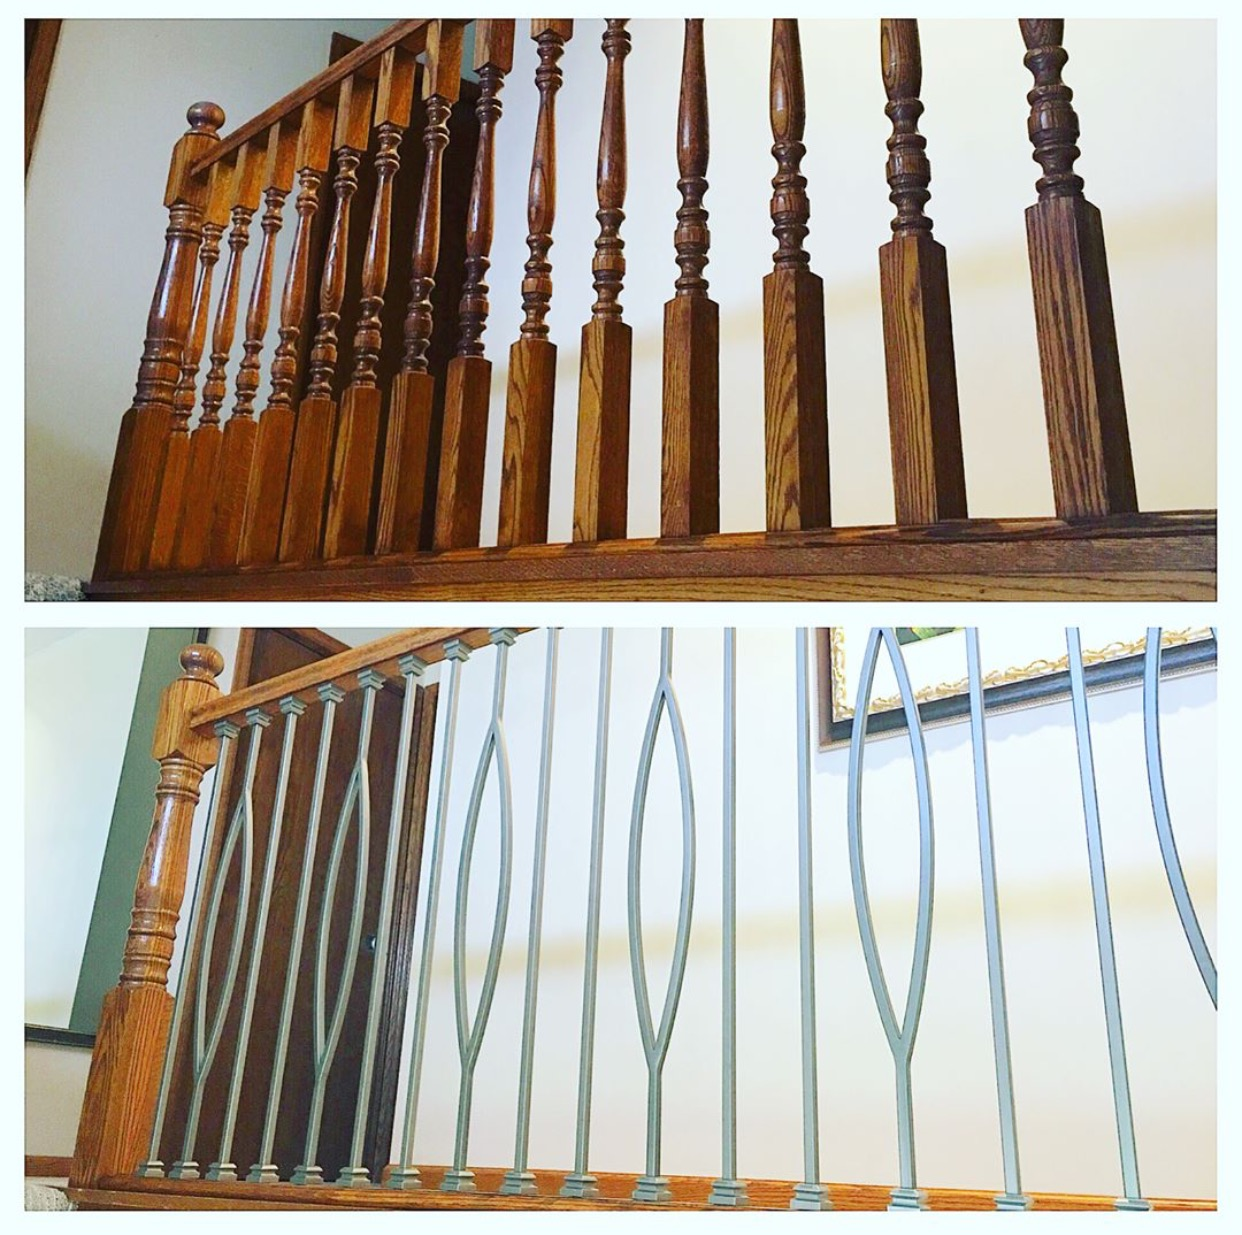 How To Give Your Spindles a Contemporary Facelift